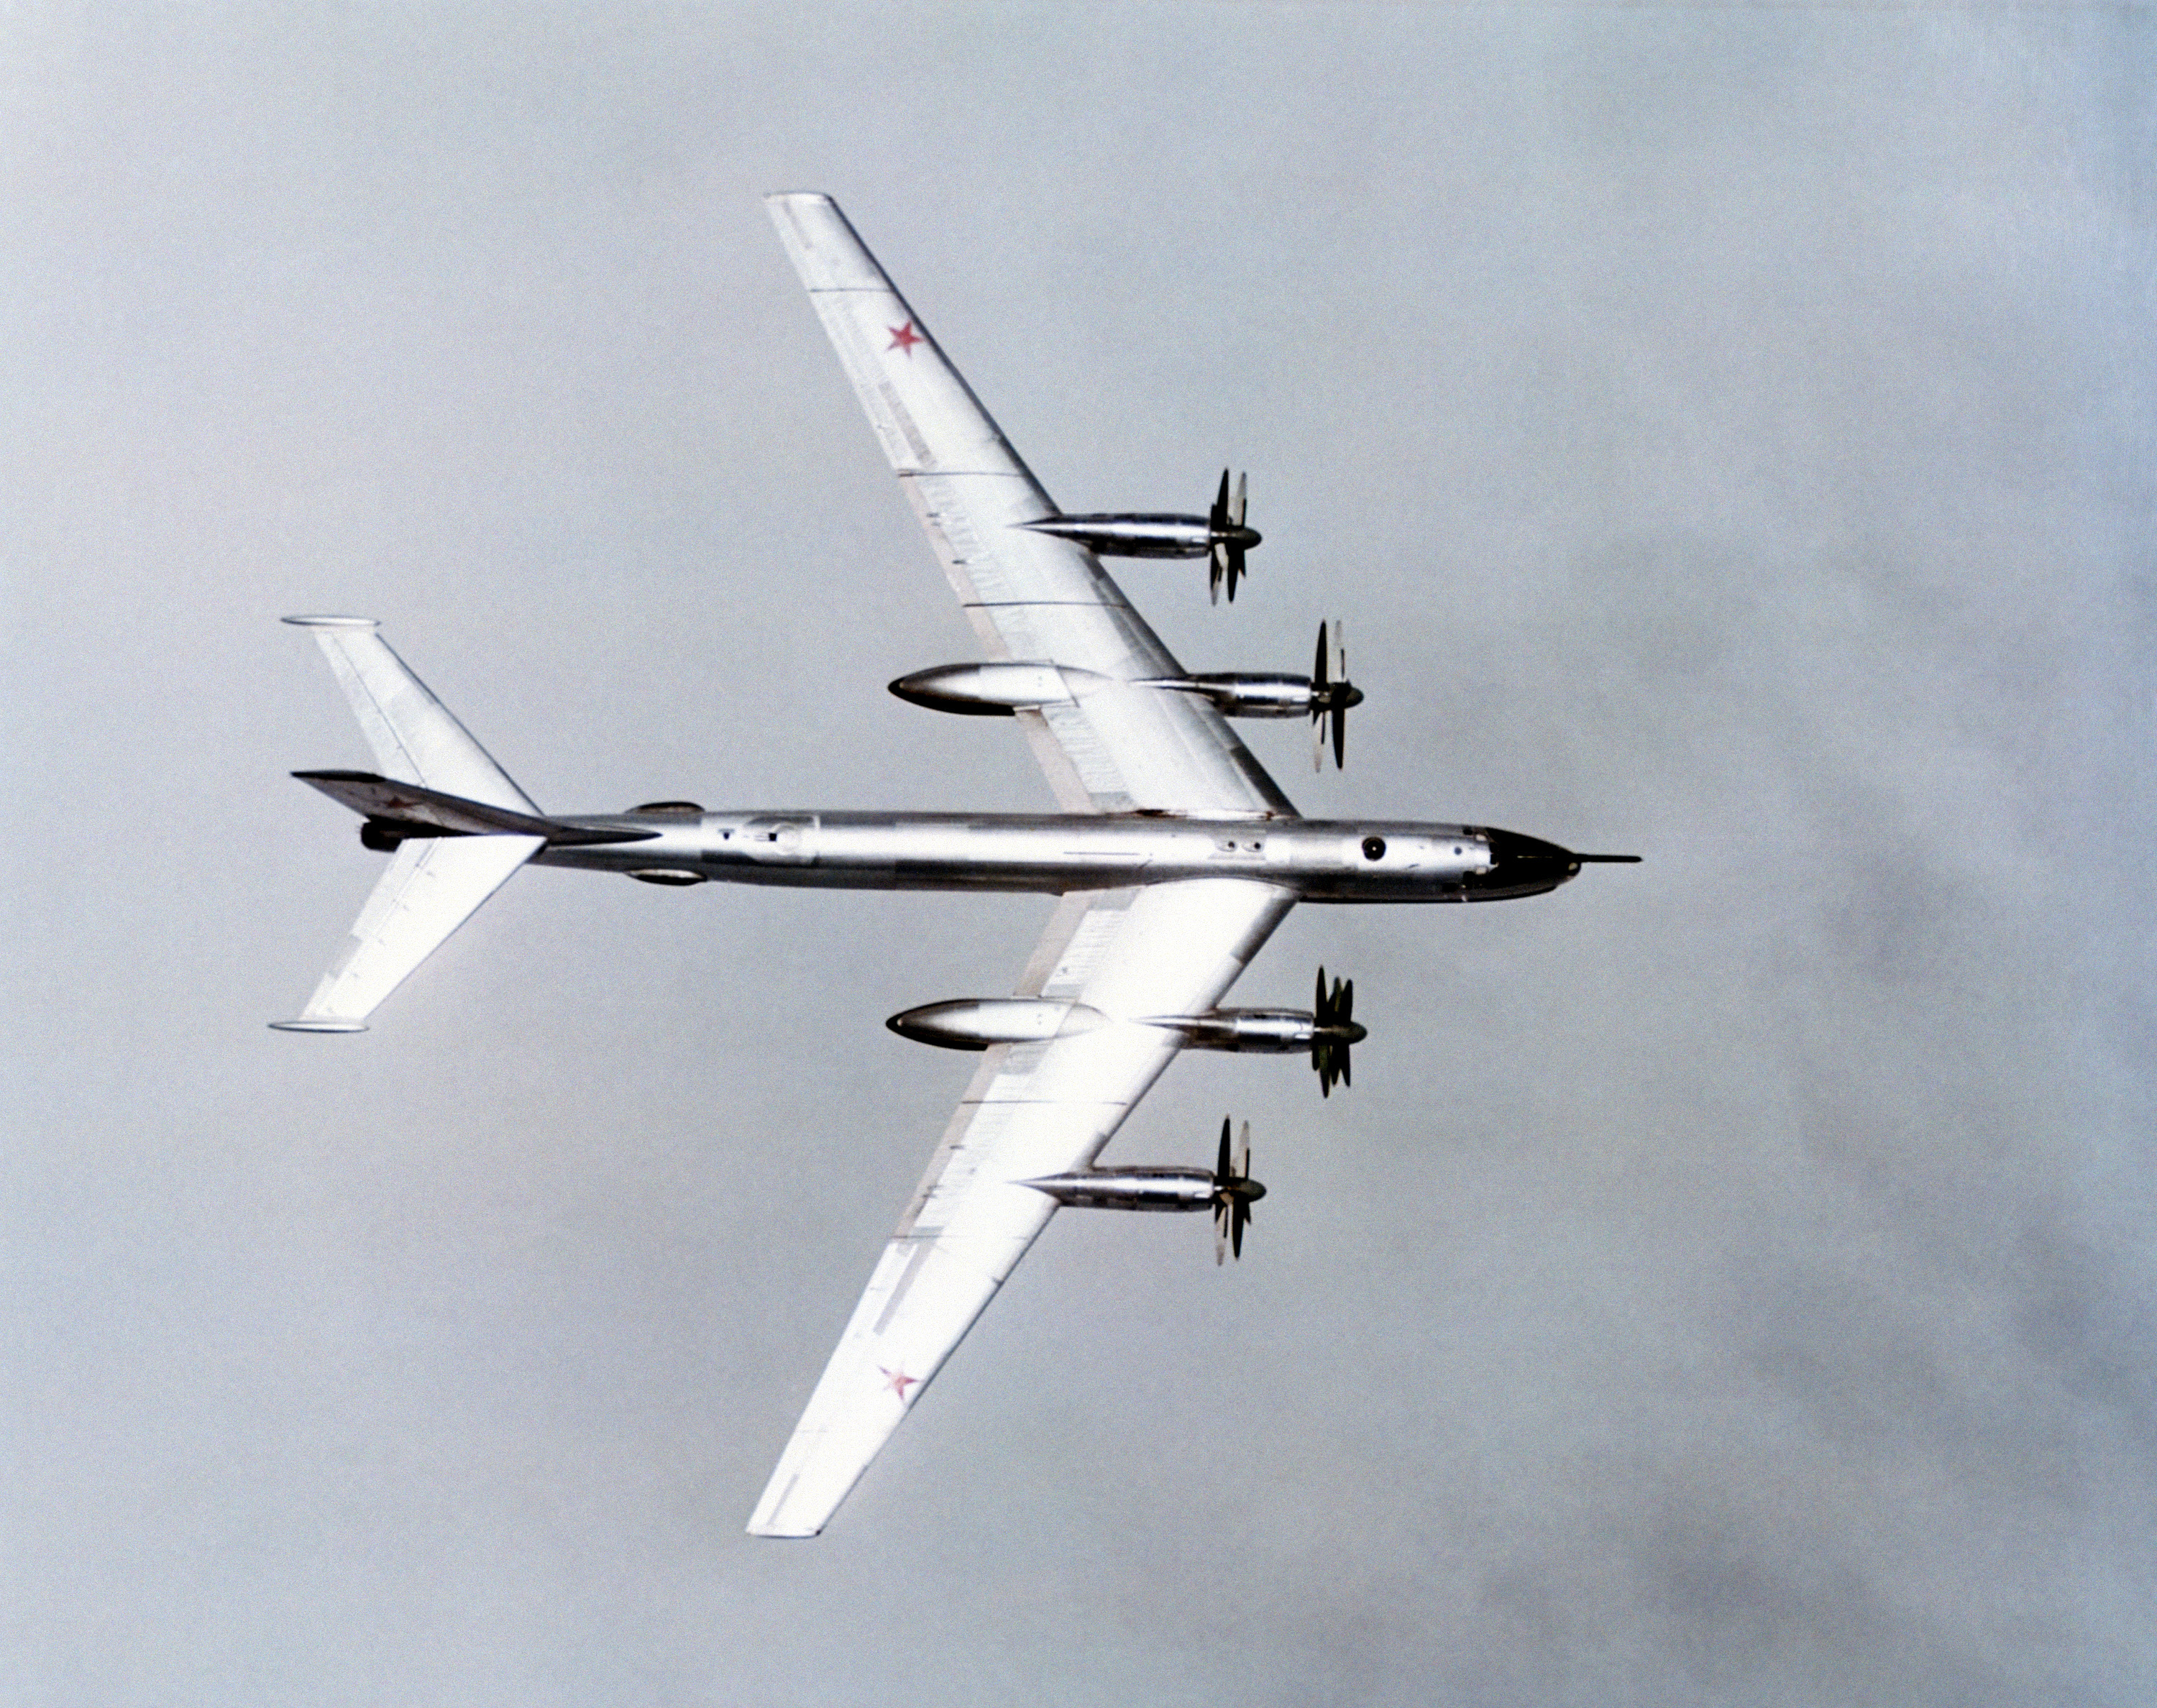 https://upload.wikimedia.org/wikipedia/commons/1/1d/Tu-95_wingspan.jpg